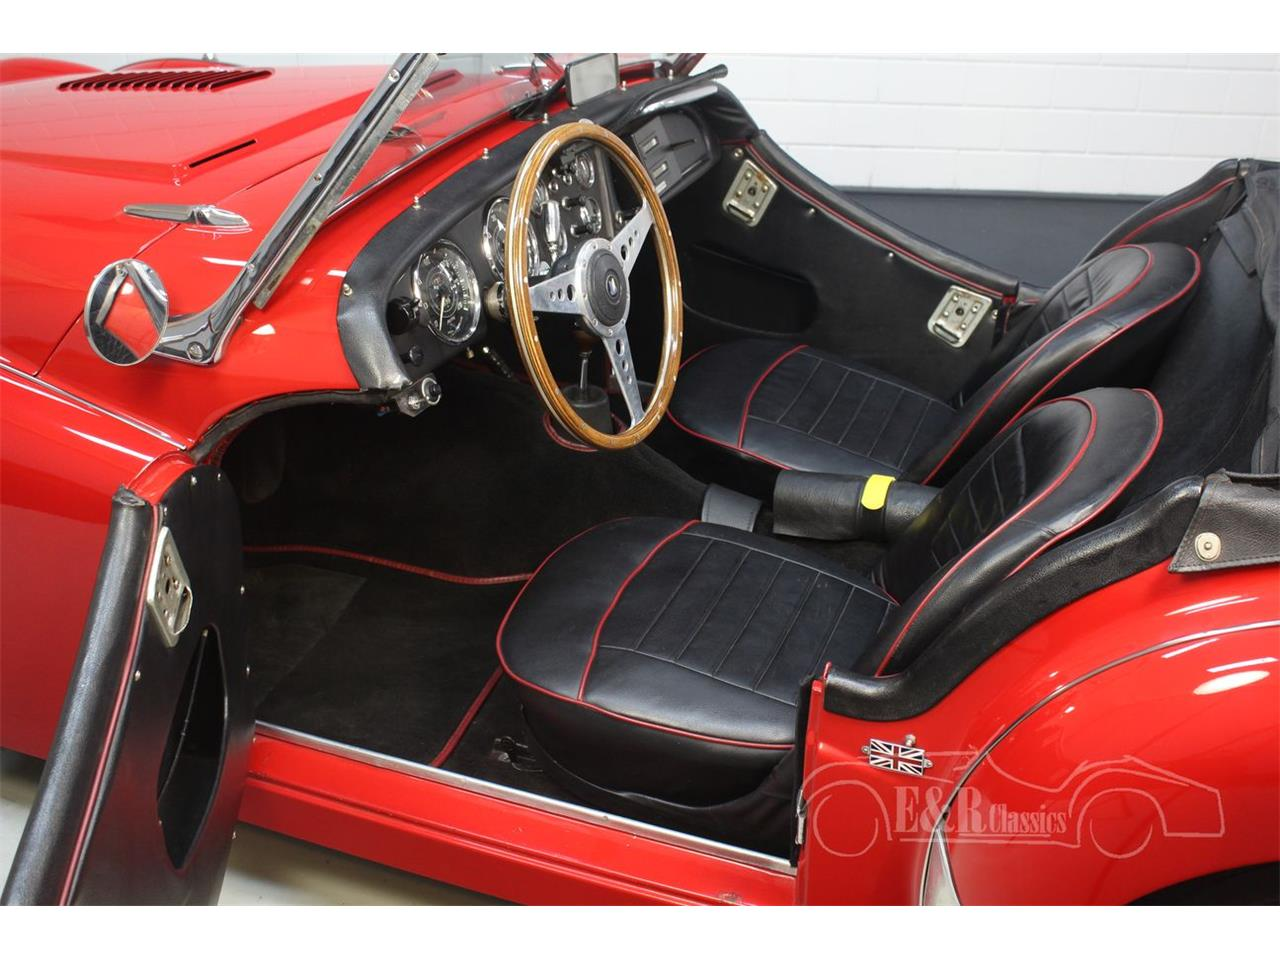 Large Picture of Classic '60 Triumph TR3A located in Waalwijk noord brabant - $41,400.00 Offered by E & R Classics - Q31H